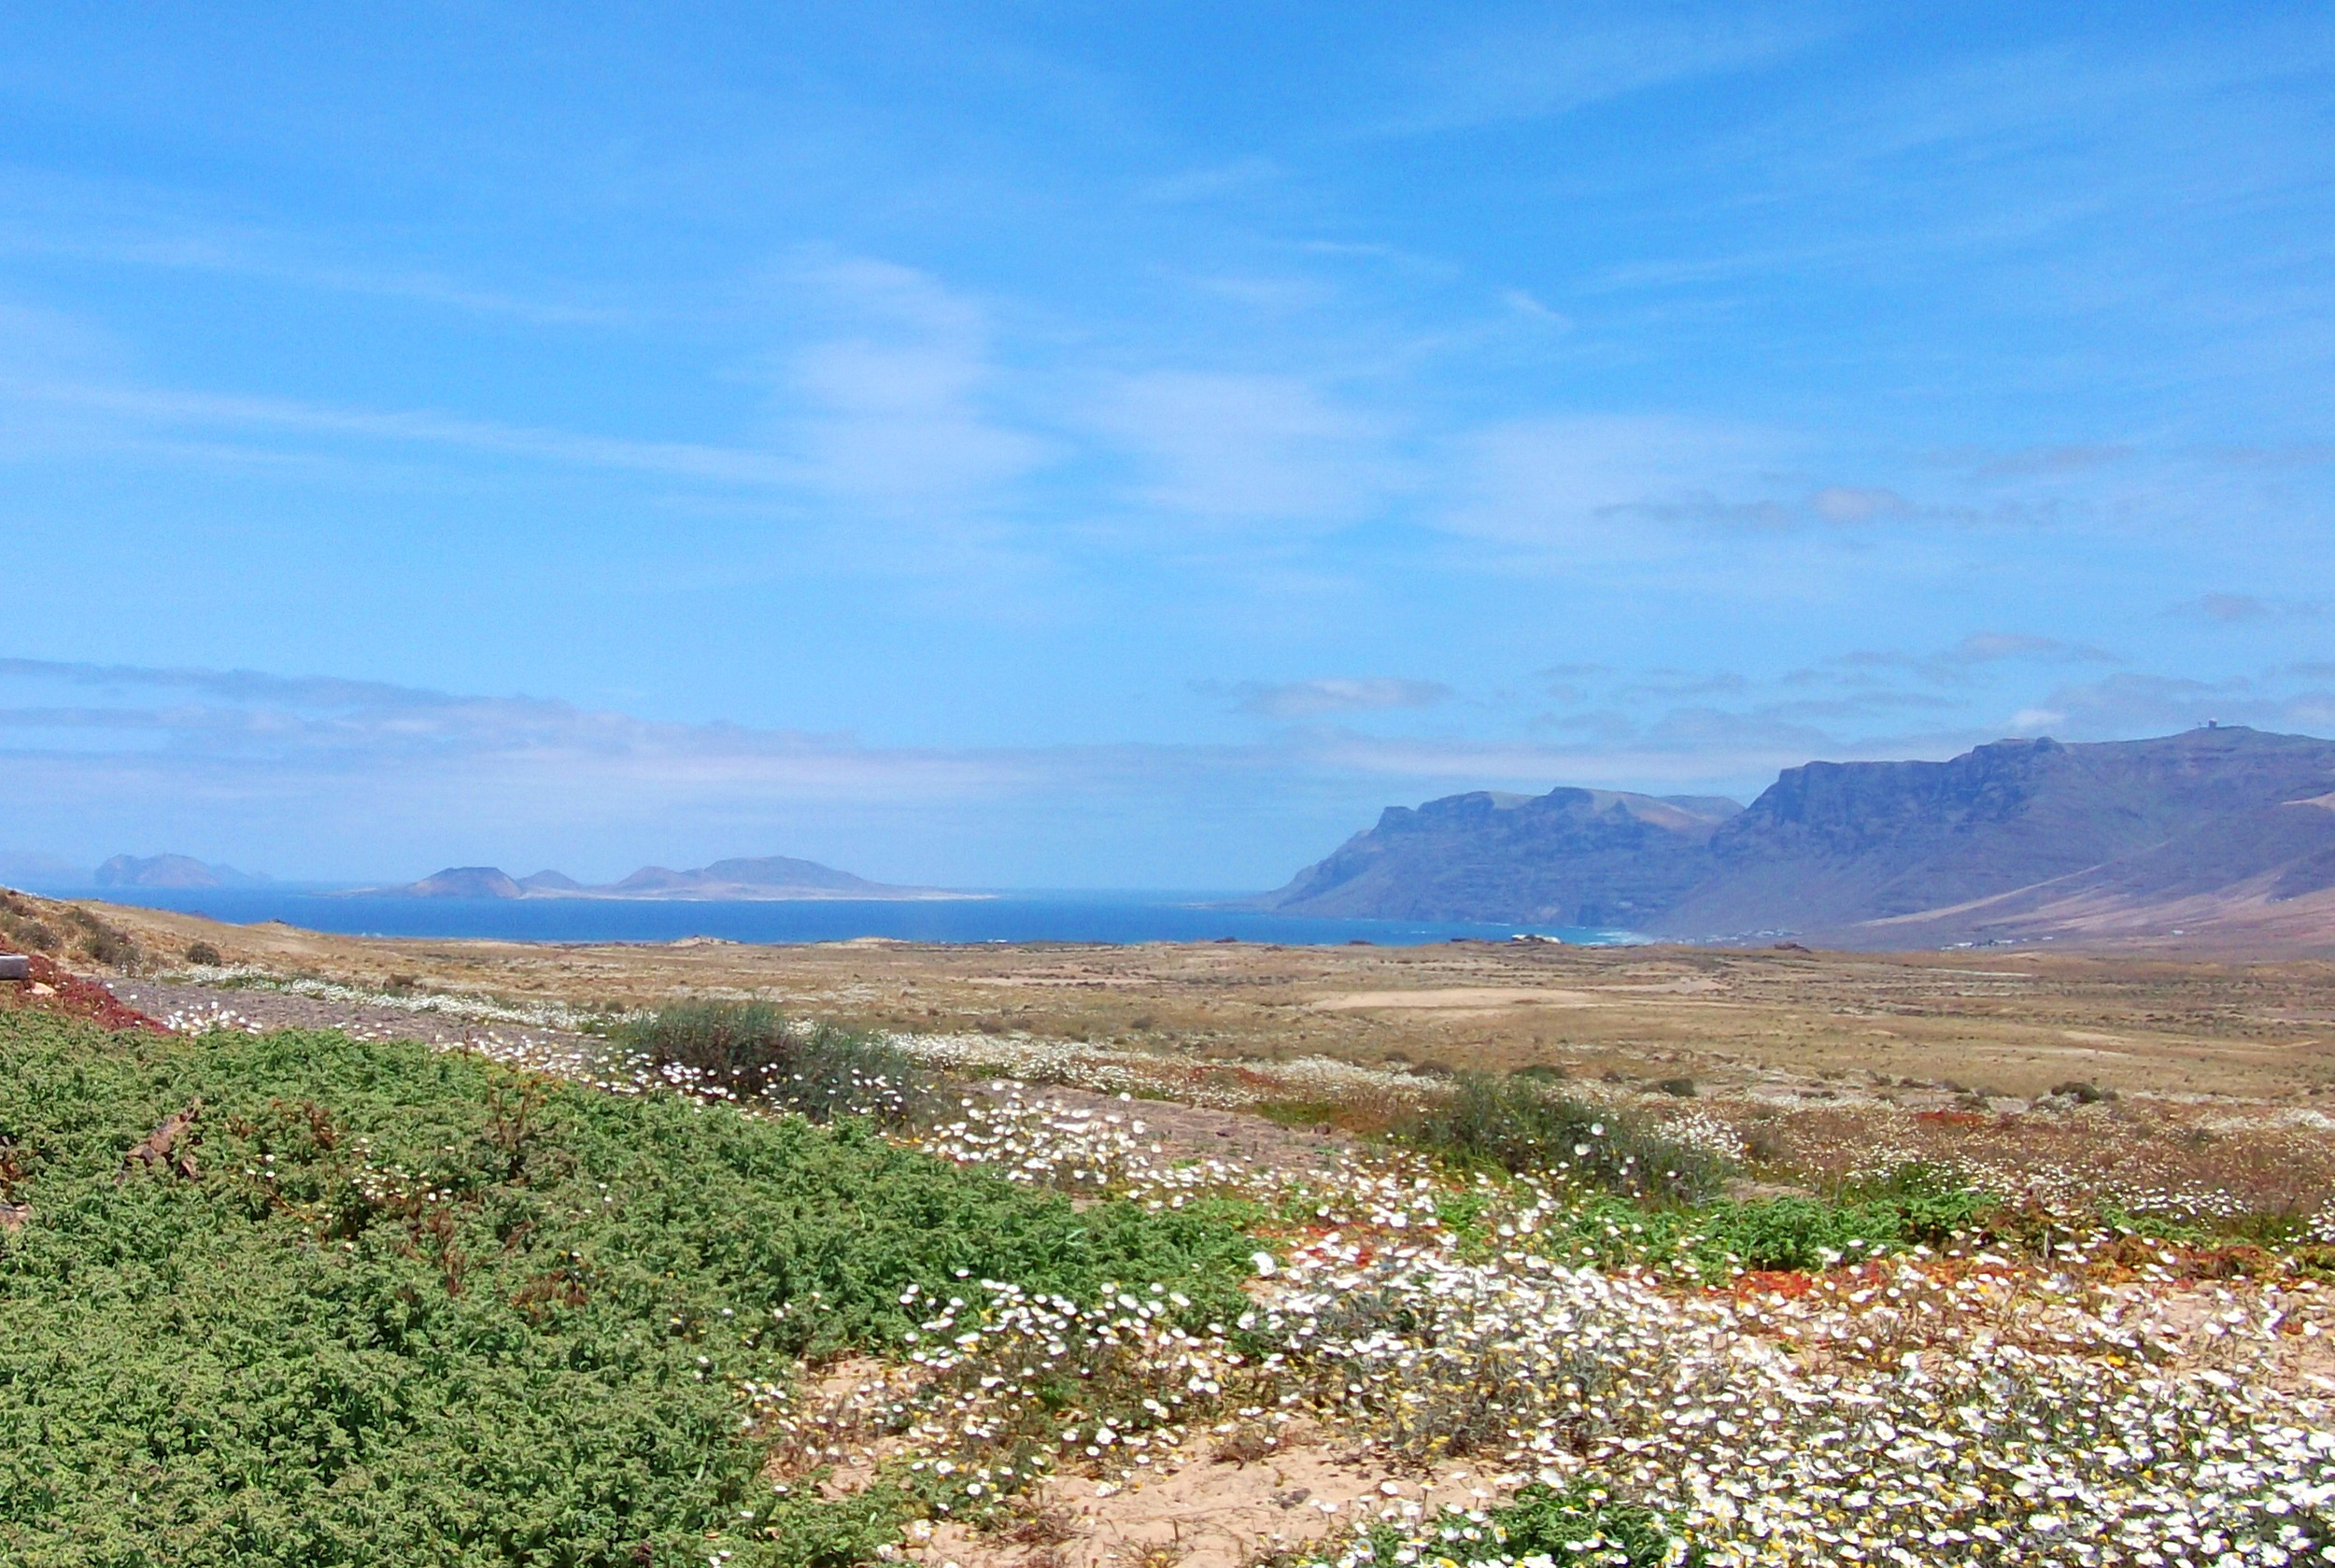 This is the vast vista of natural park enjoyed by the eco cottage accommodation,  Jewel of the Sands , with La Graciosa island beyond. Click to inspect this totally restored Lanzarote Finca with its authentic Canarian interiors and relaxing gardens